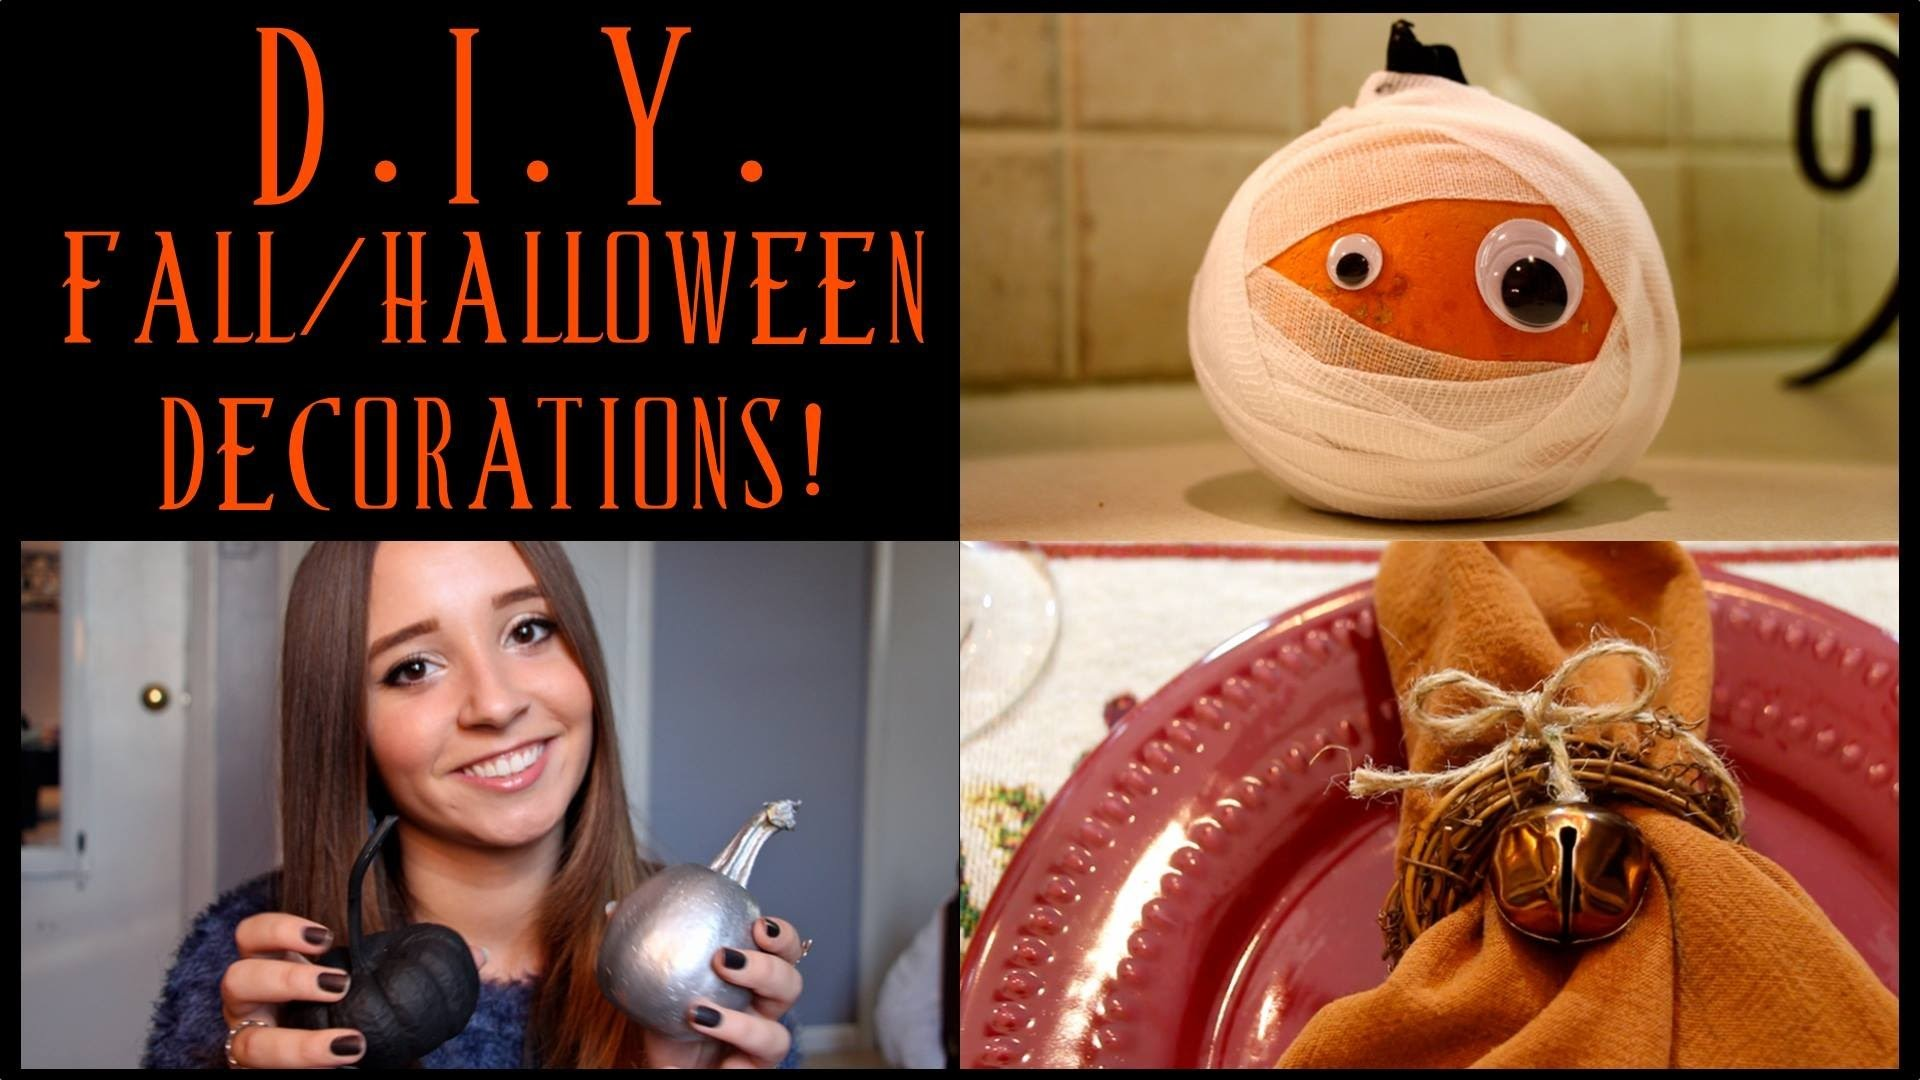 DIY Fall & Halloween Decorations! - Ali Brustofski